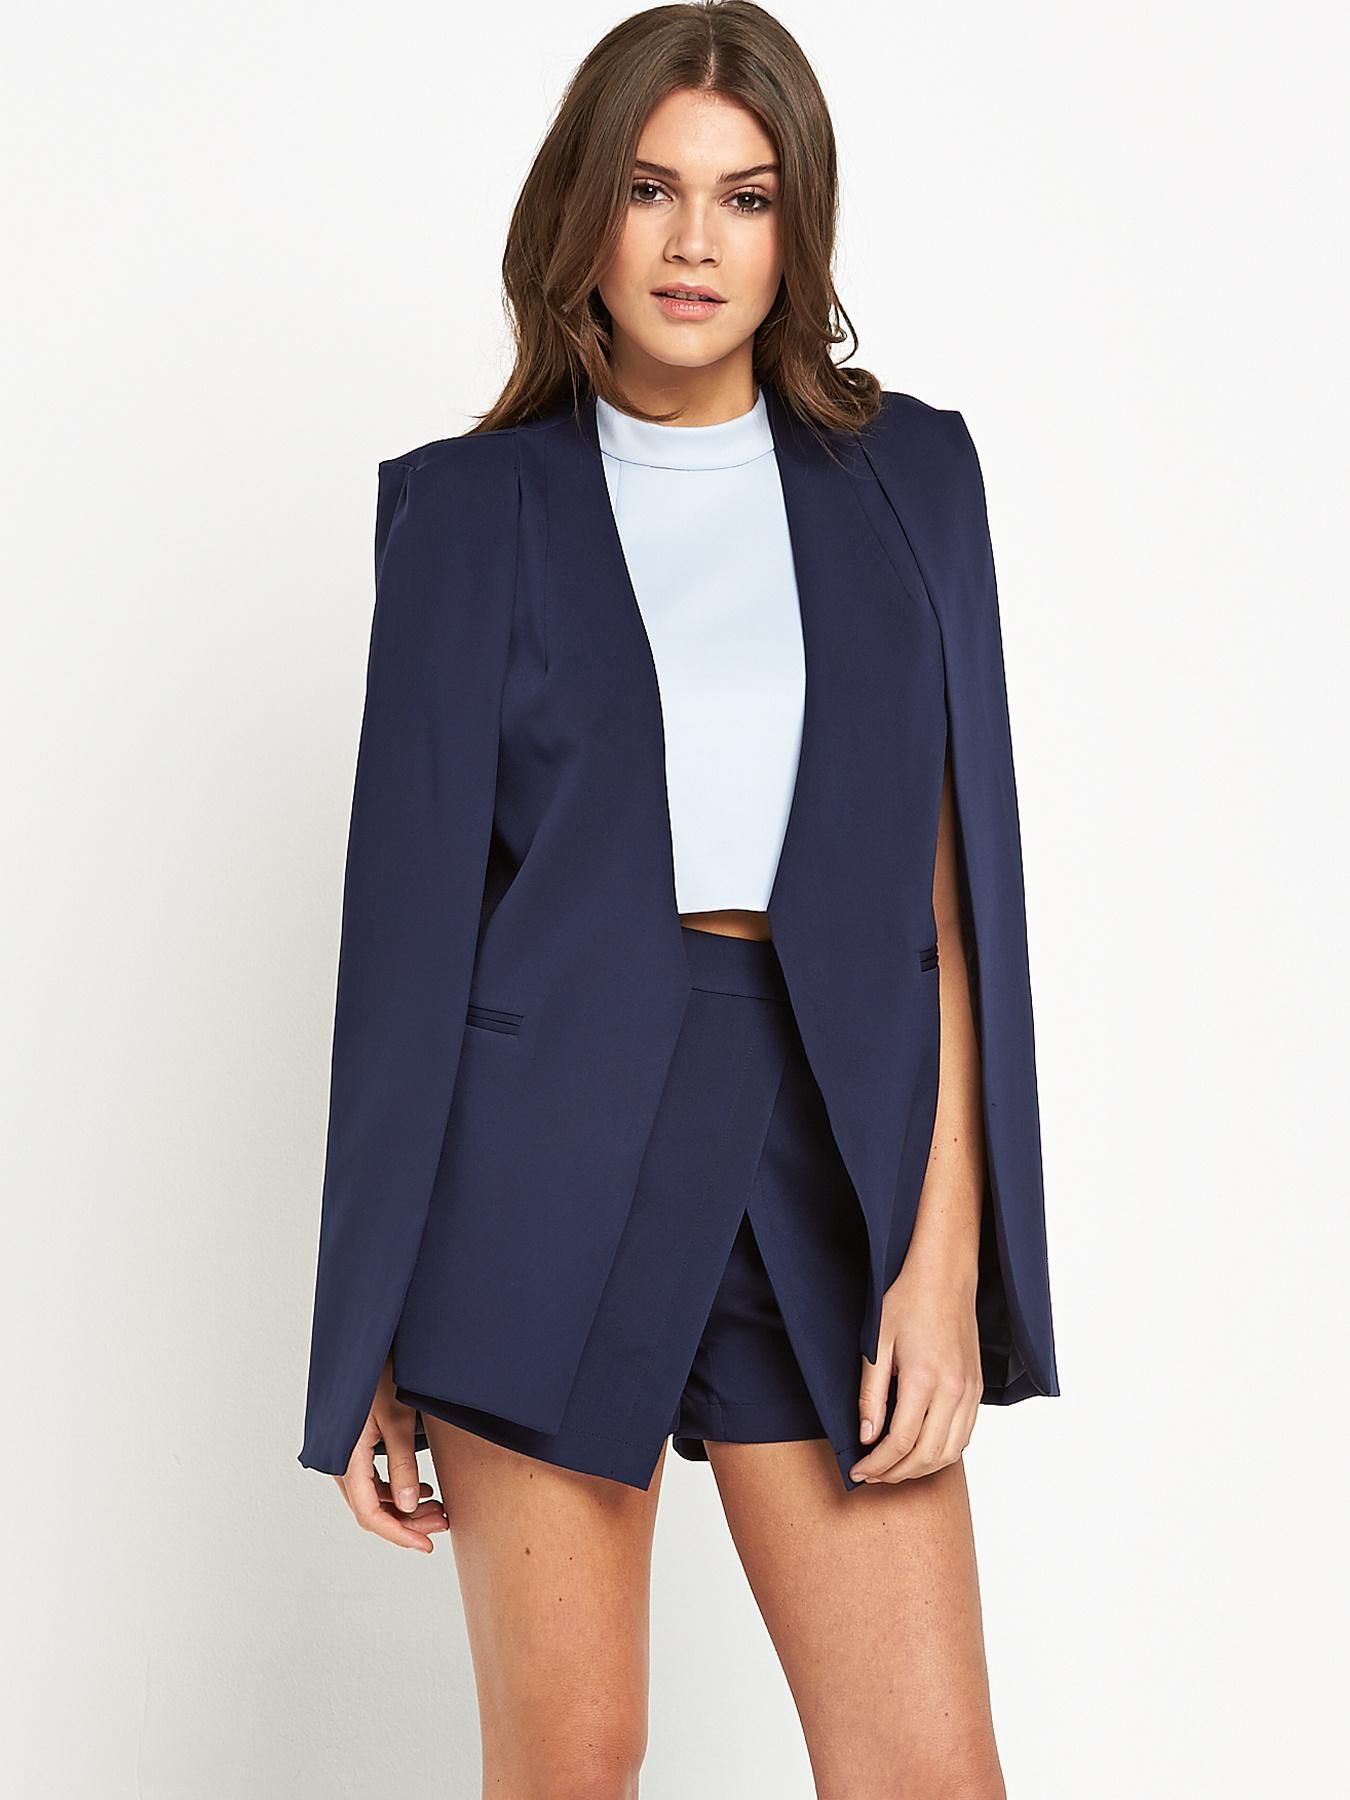 Lavish Alice Collar Cape Blazer  Navy, Navy Available From